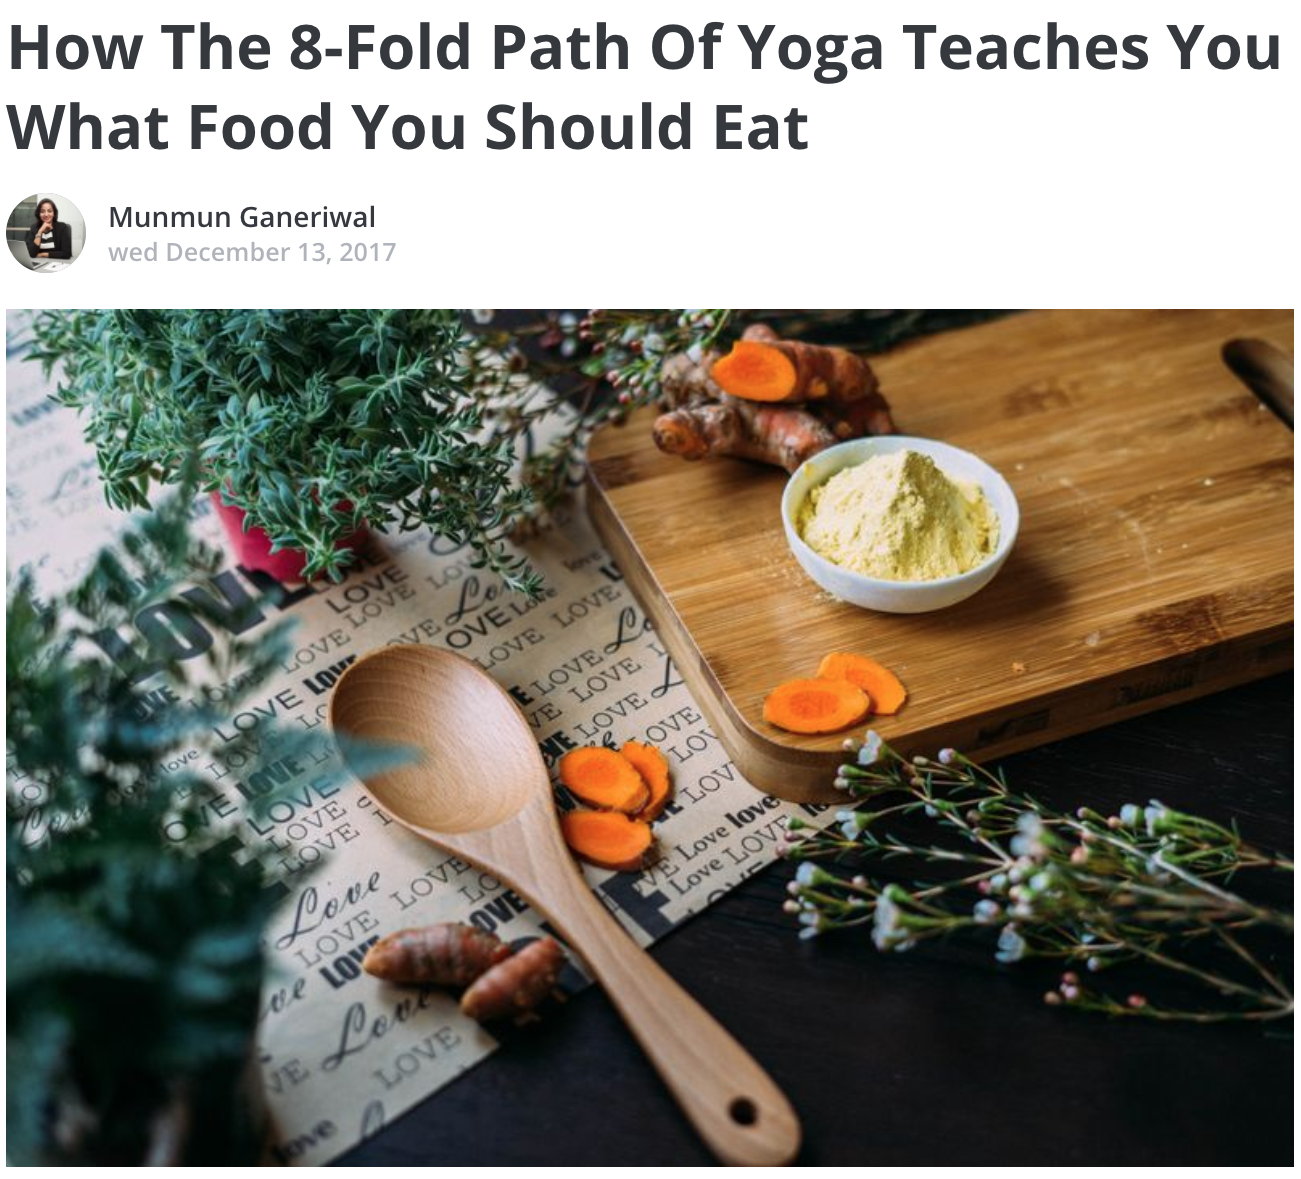 How The 8-Fold Path Of Yoga Teaches You What Food You Should Eat